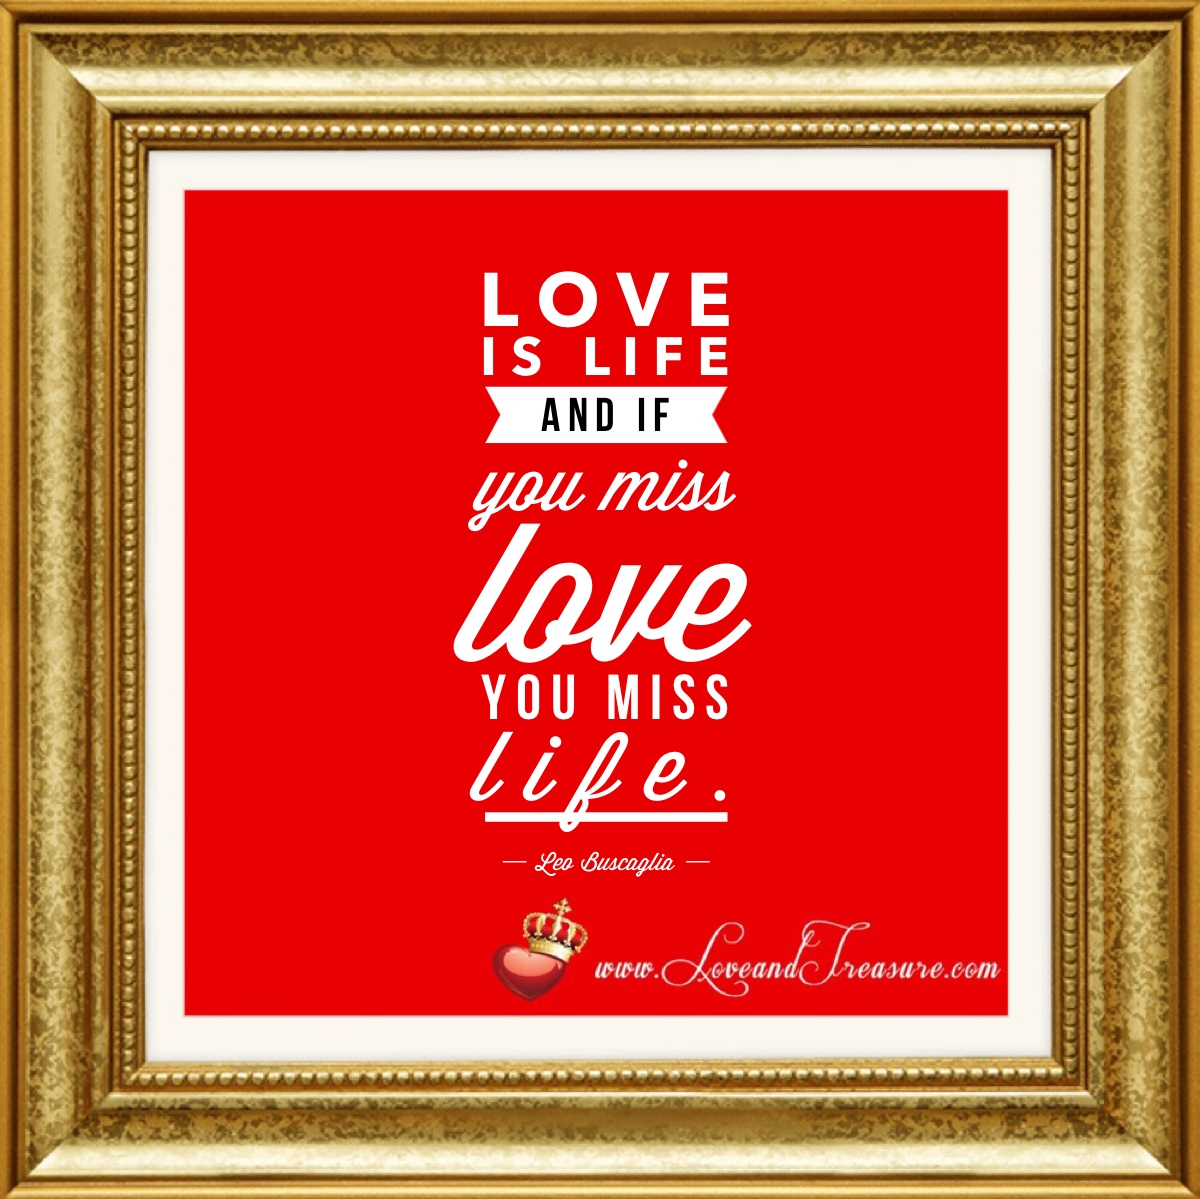 love is life and if you miss love you miss life, www.loveandtreasure.com, love and treasure, leo buscaglia